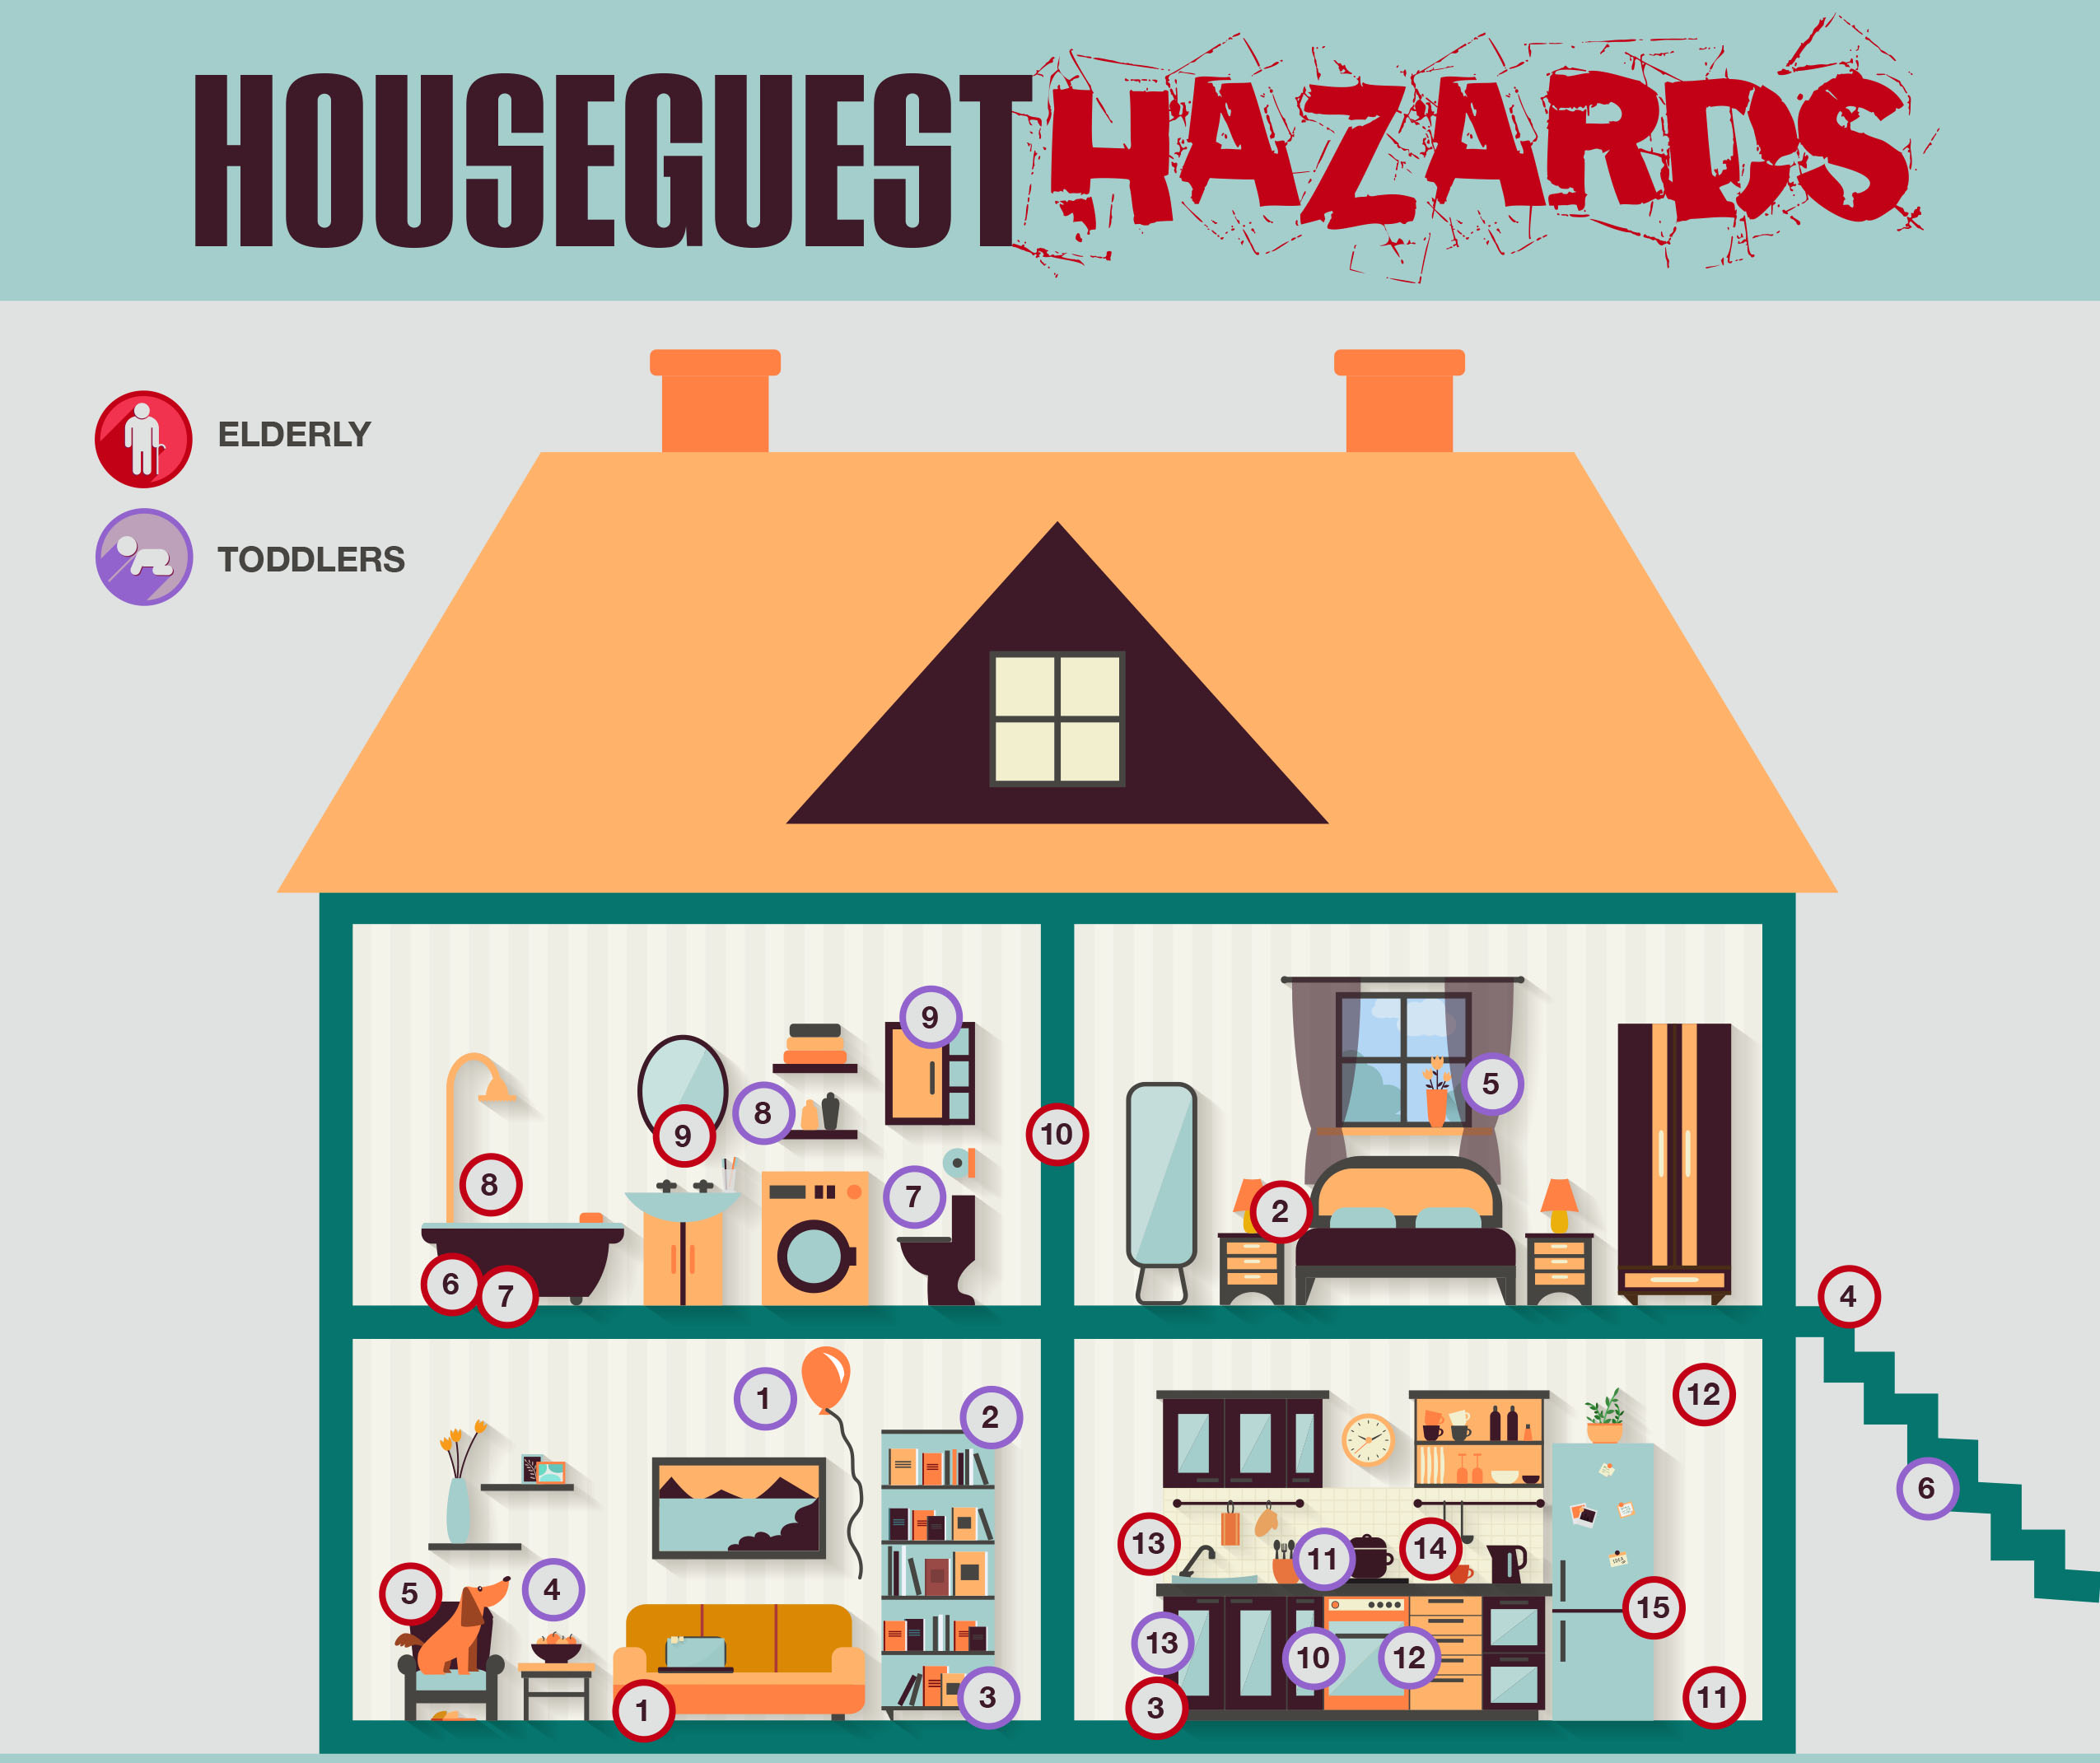 Southern oak insurance houseguest hazards for Safety around the house